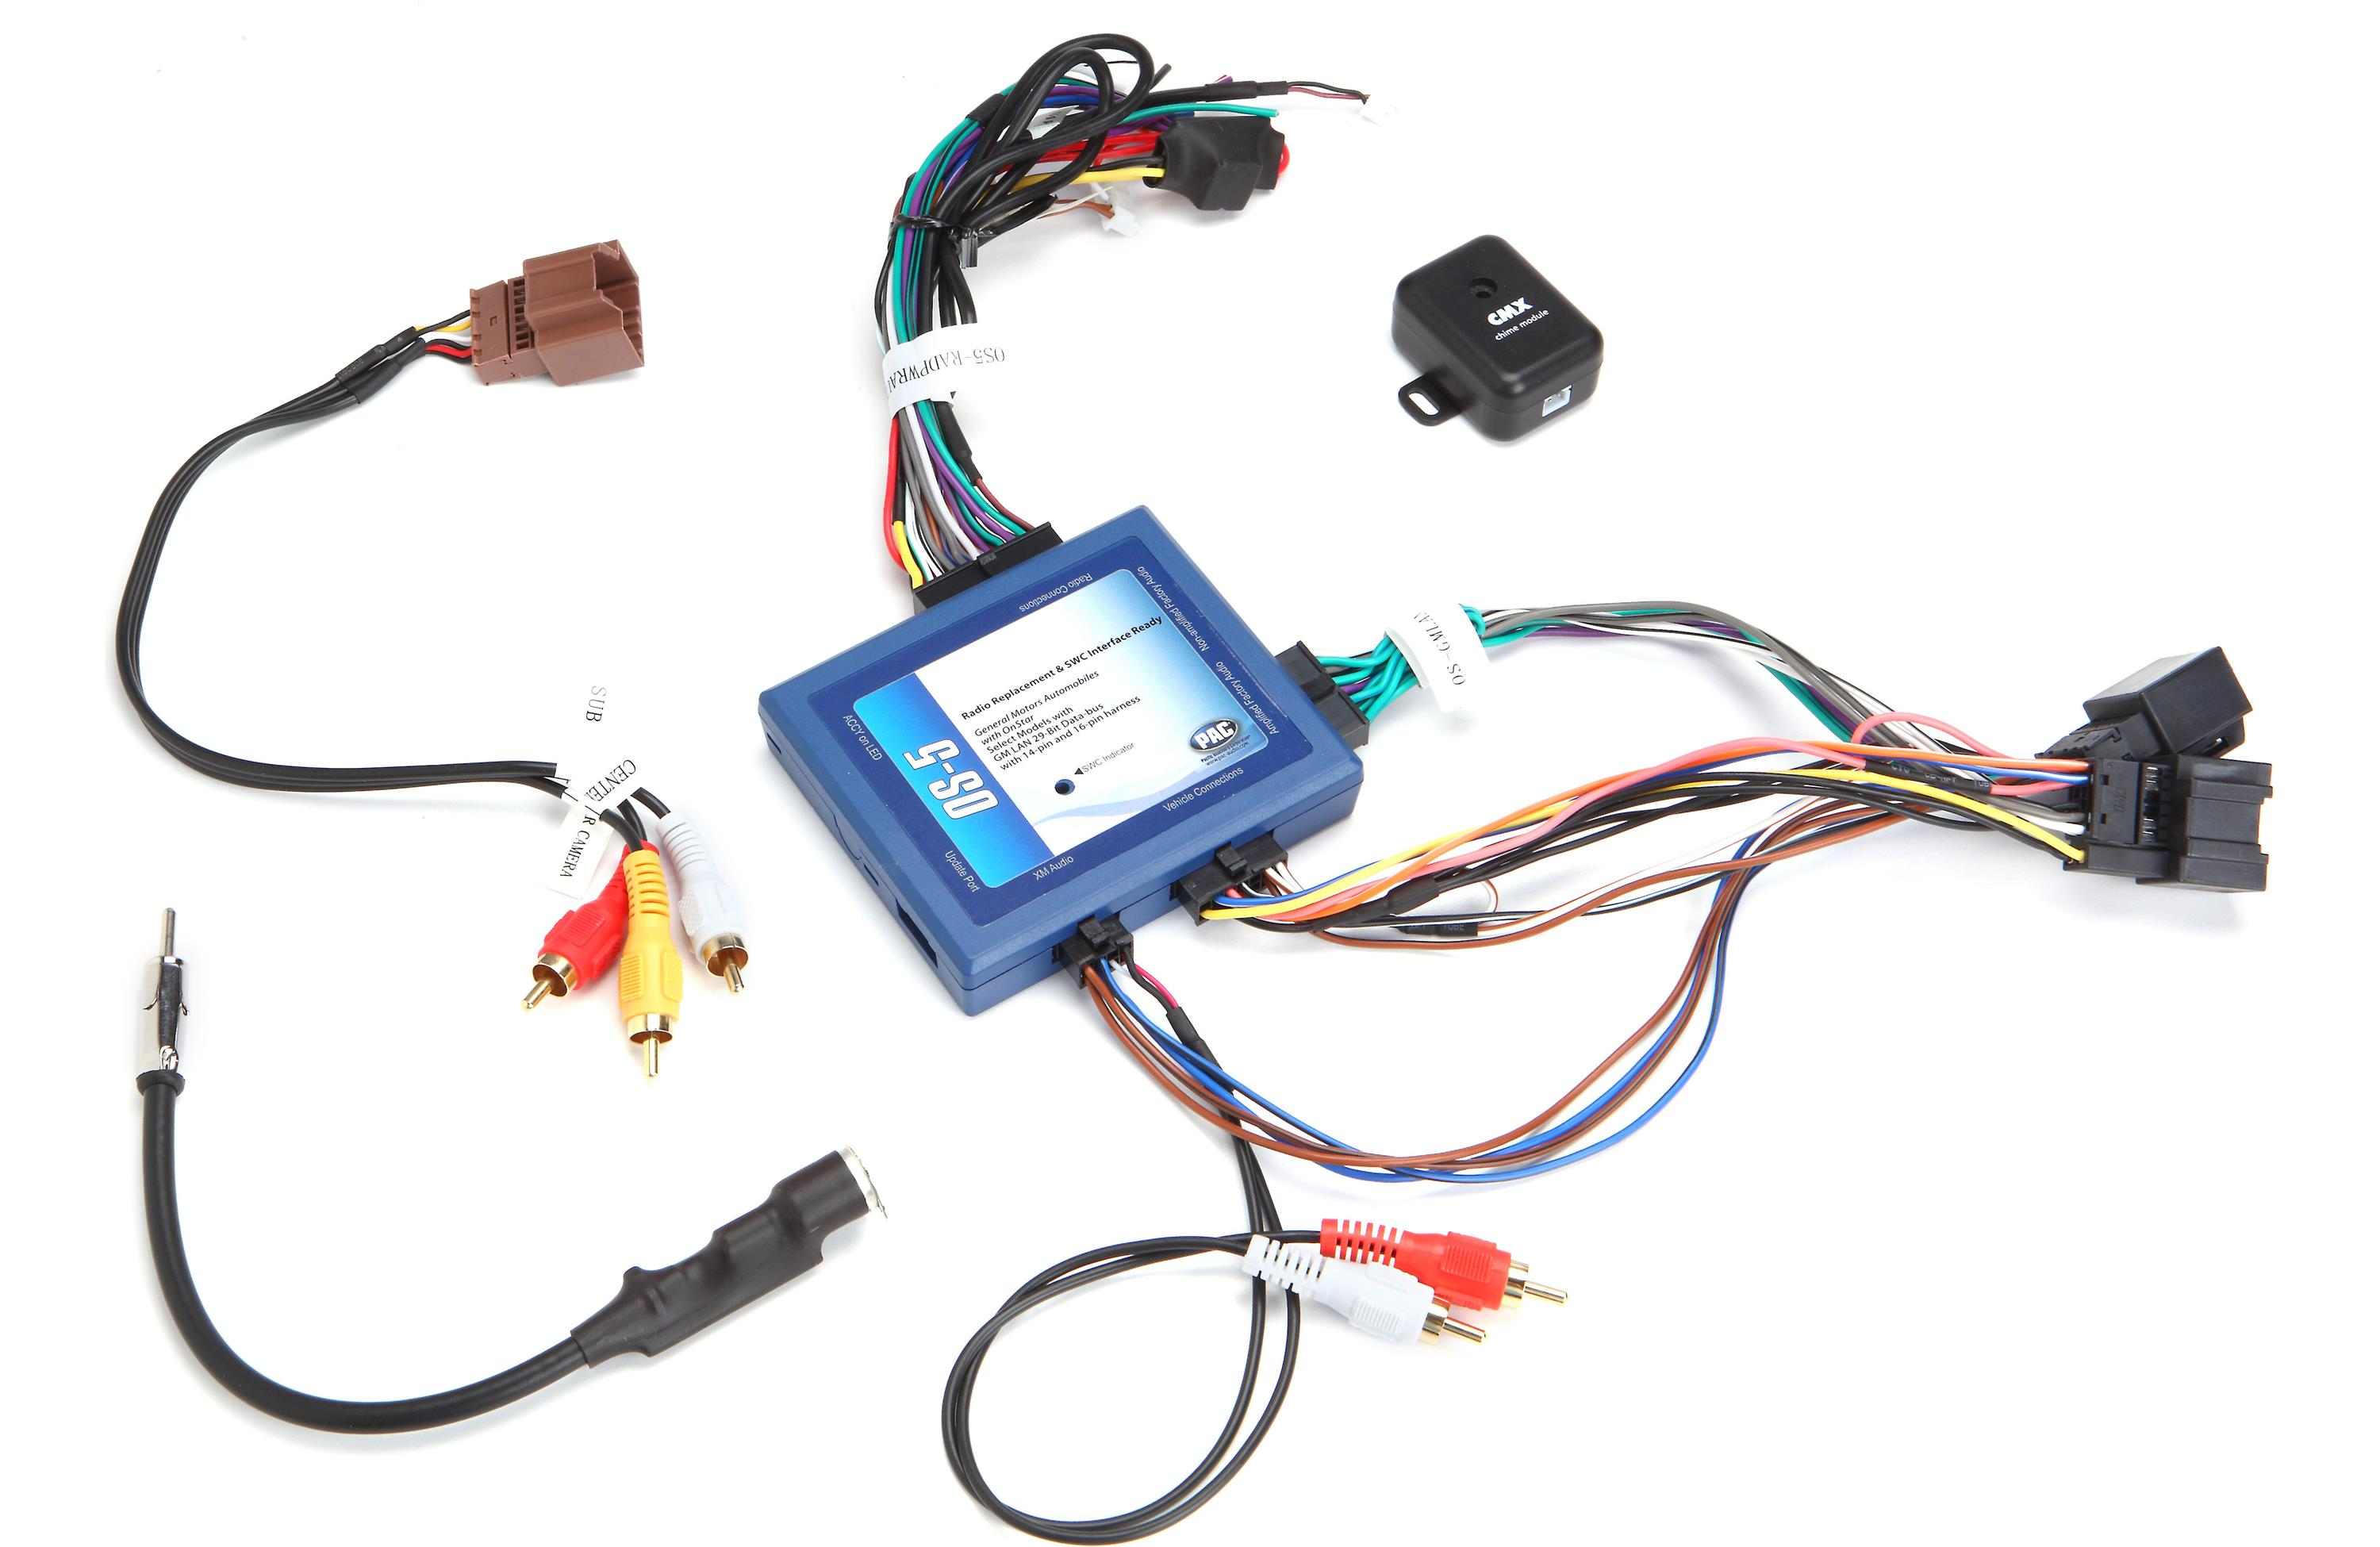 Pac Os 5 Radio Replacement Interface Harness For Select Gm Vehicles Wiring 606523107778